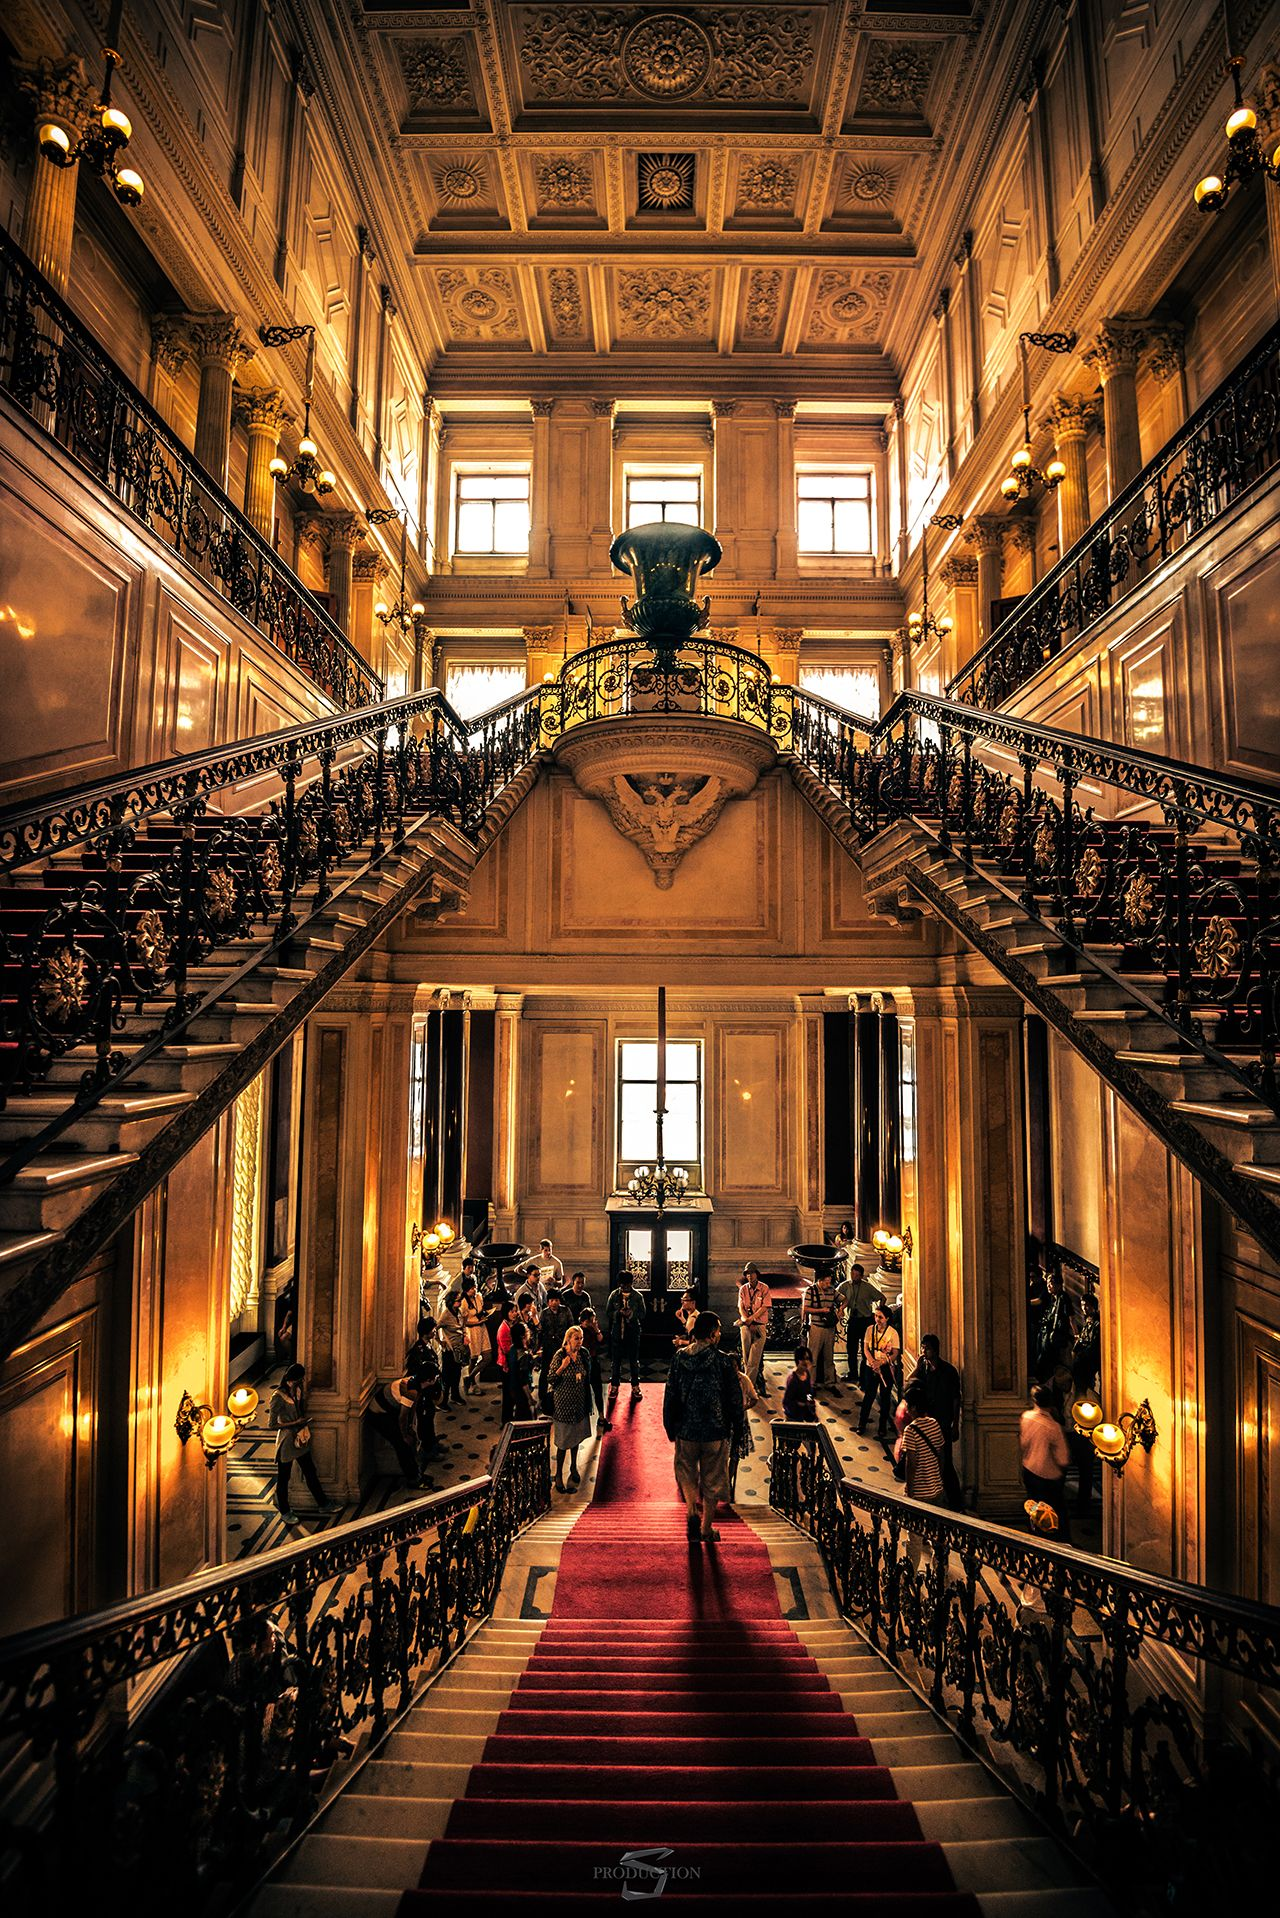 Elegant Staircases at Winter Palace, St Petersburg